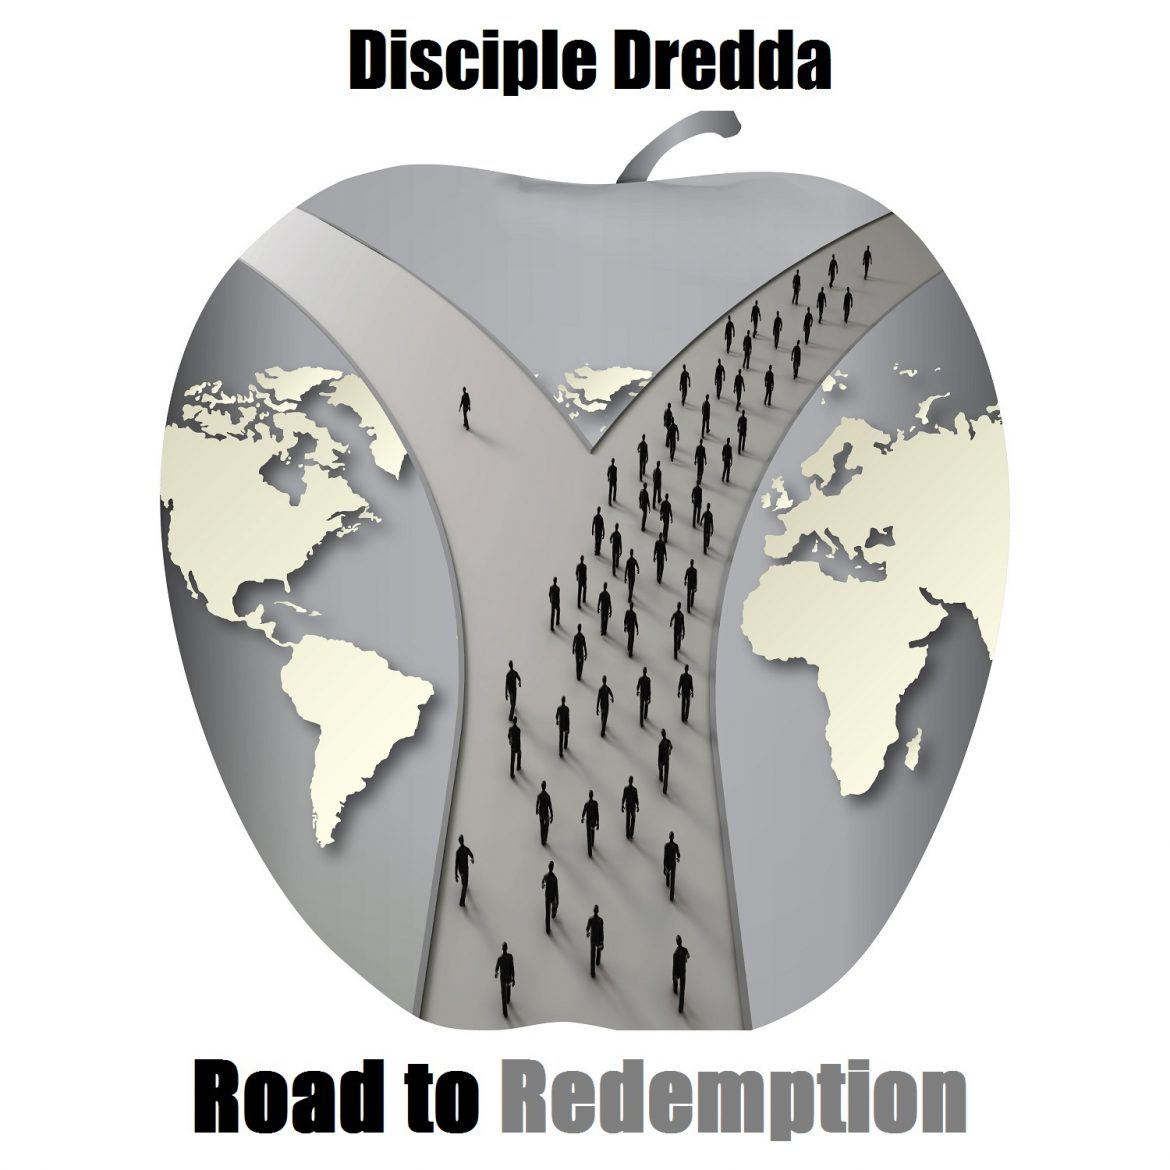 Disciple Dredda - The Great Commission